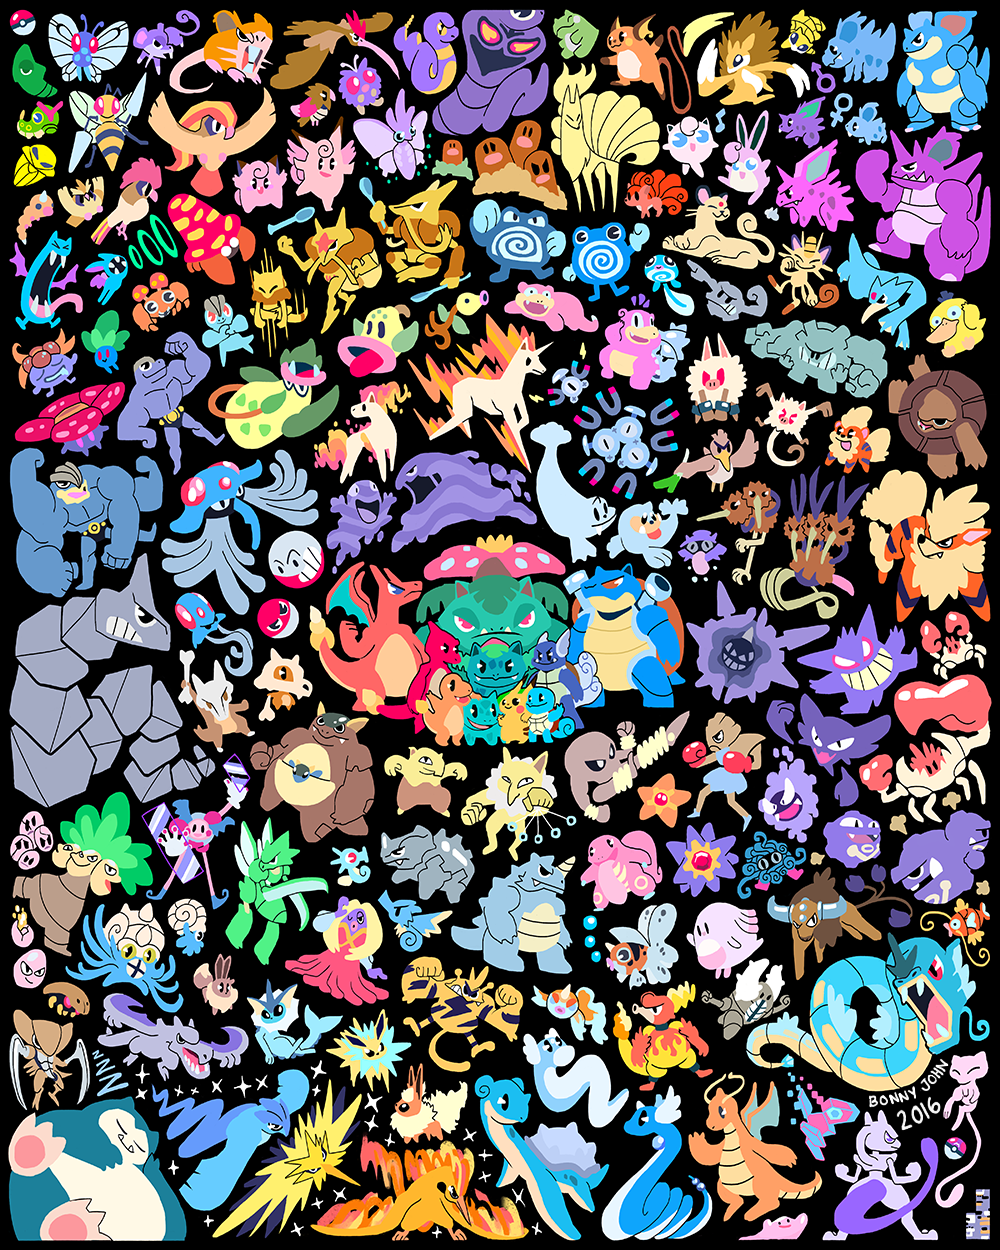 151 Pokemon 20th Anniversary by Bonny John.png